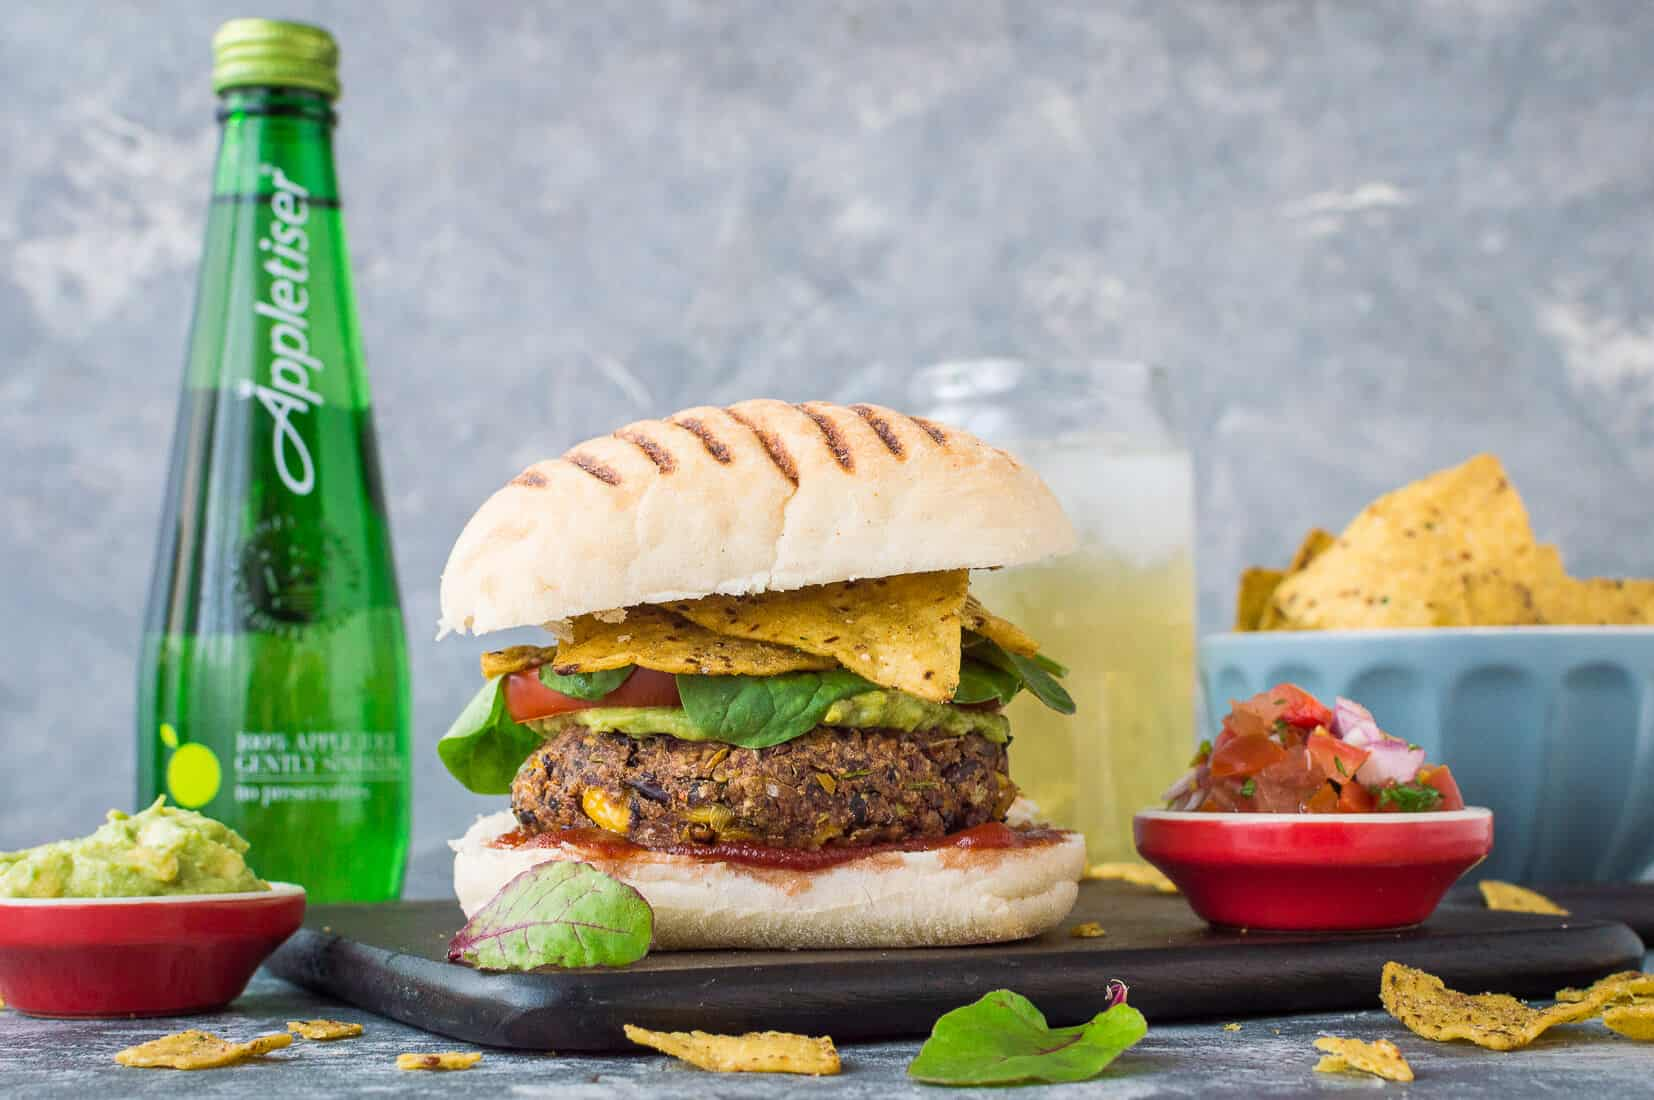 Vegan mexican bean burger in a bun on a wooden board with tortilla chips, salsa and Appletiser